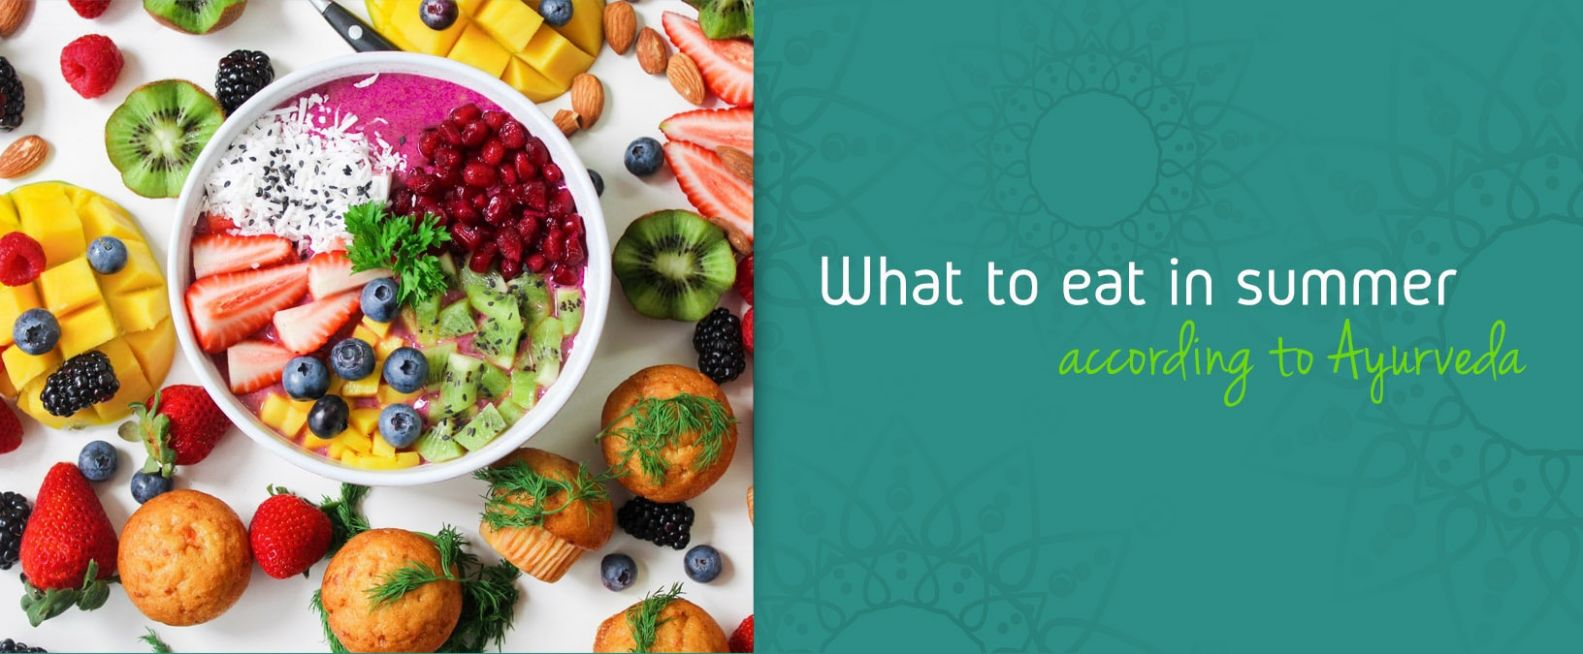 What to eat in summer according to Ayurveda | Better Body, Better ..